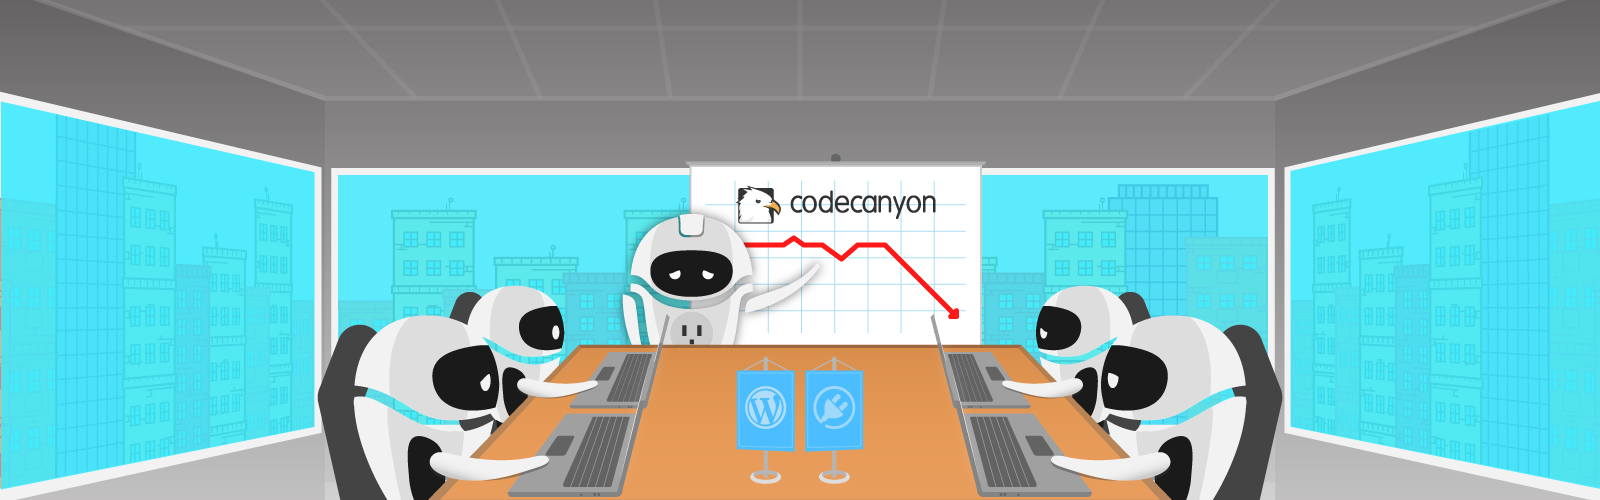 CodeCanyon numbers are decreasing